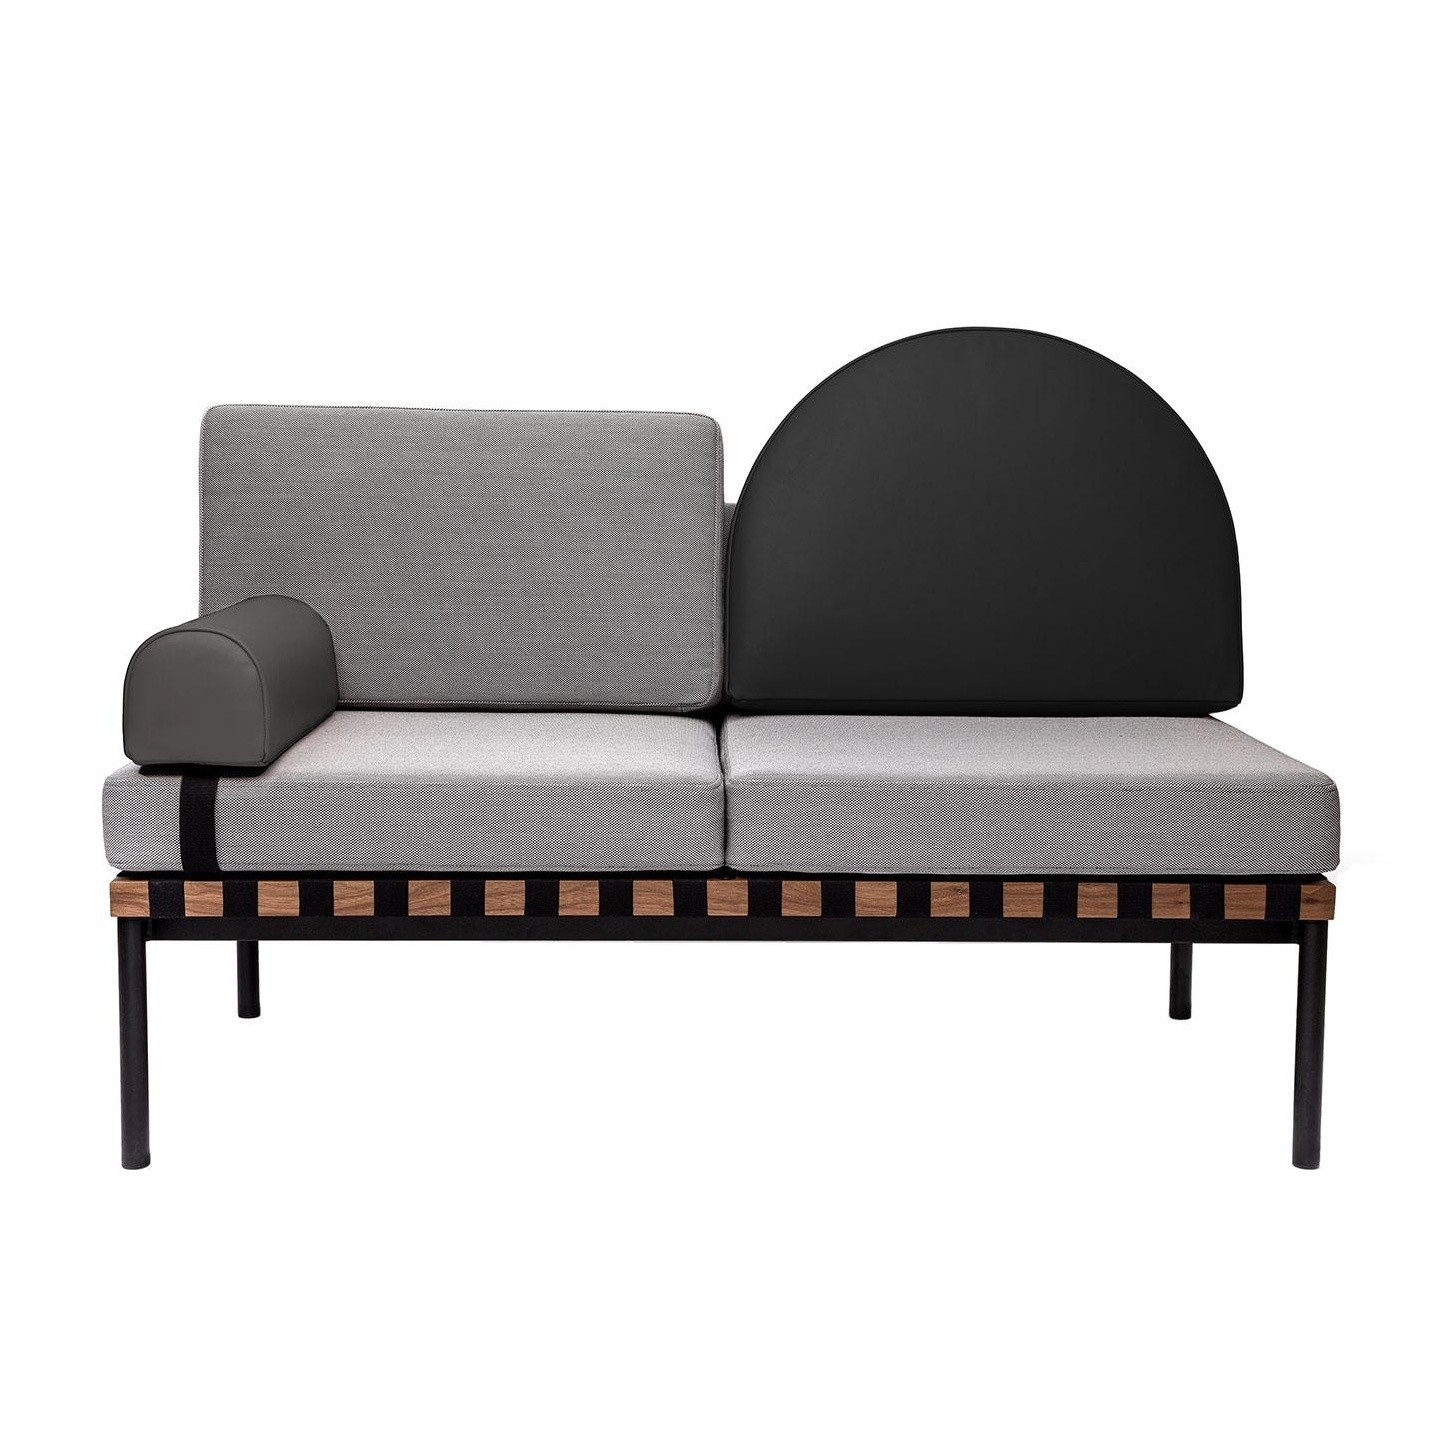 Pee Friture Grid 2 Seater Sofa Frame